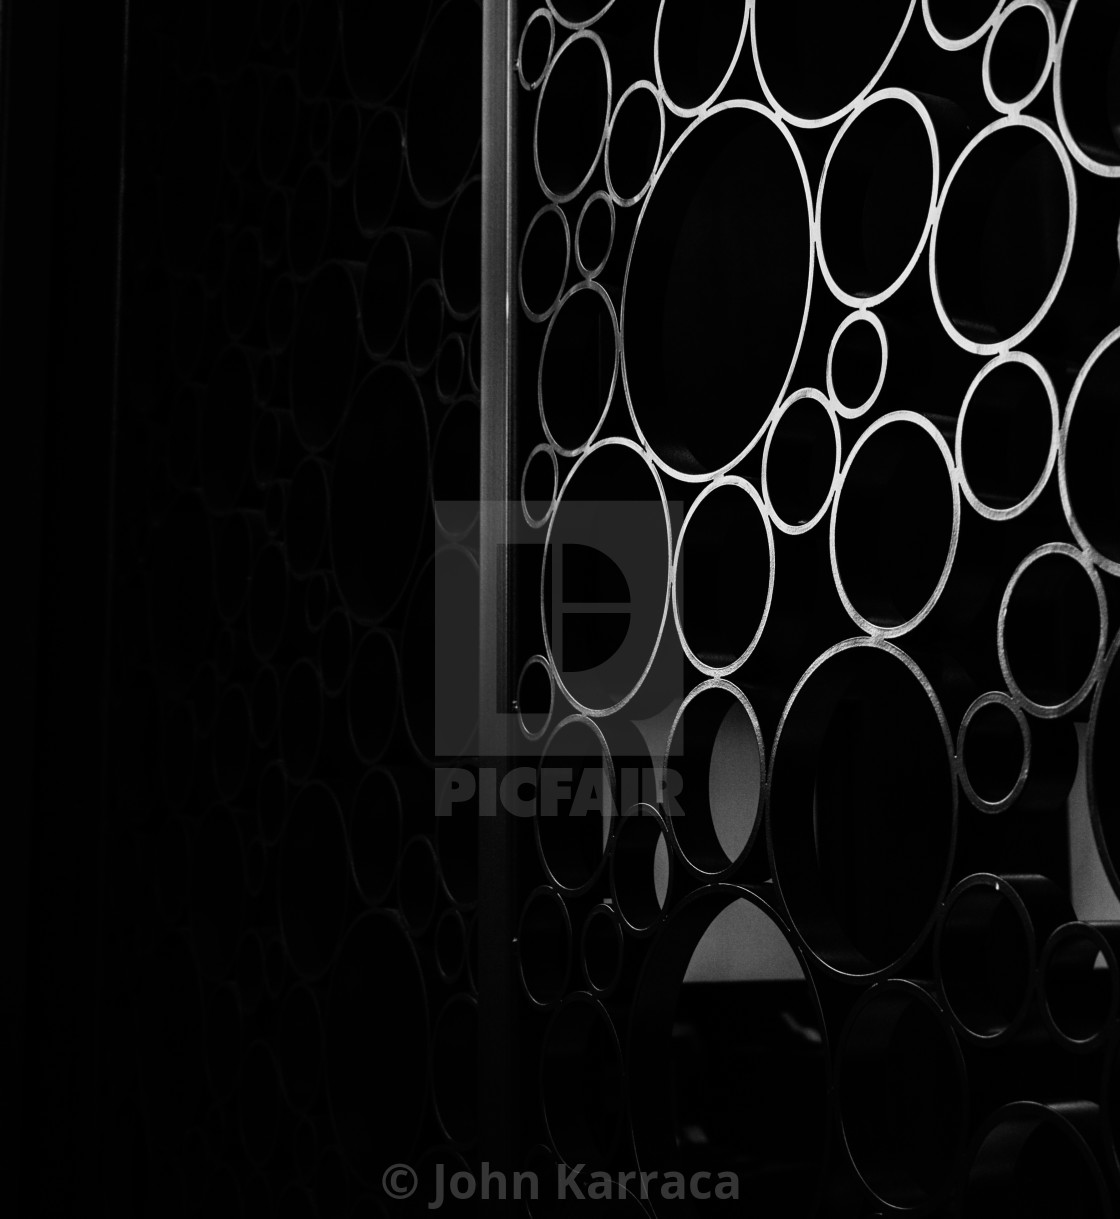 black steel circles on a gate create in an elegant background license download or print for 3 72 photos picfair https www picfair com pics 08394551 black steel circles on a gate create in an elegant background